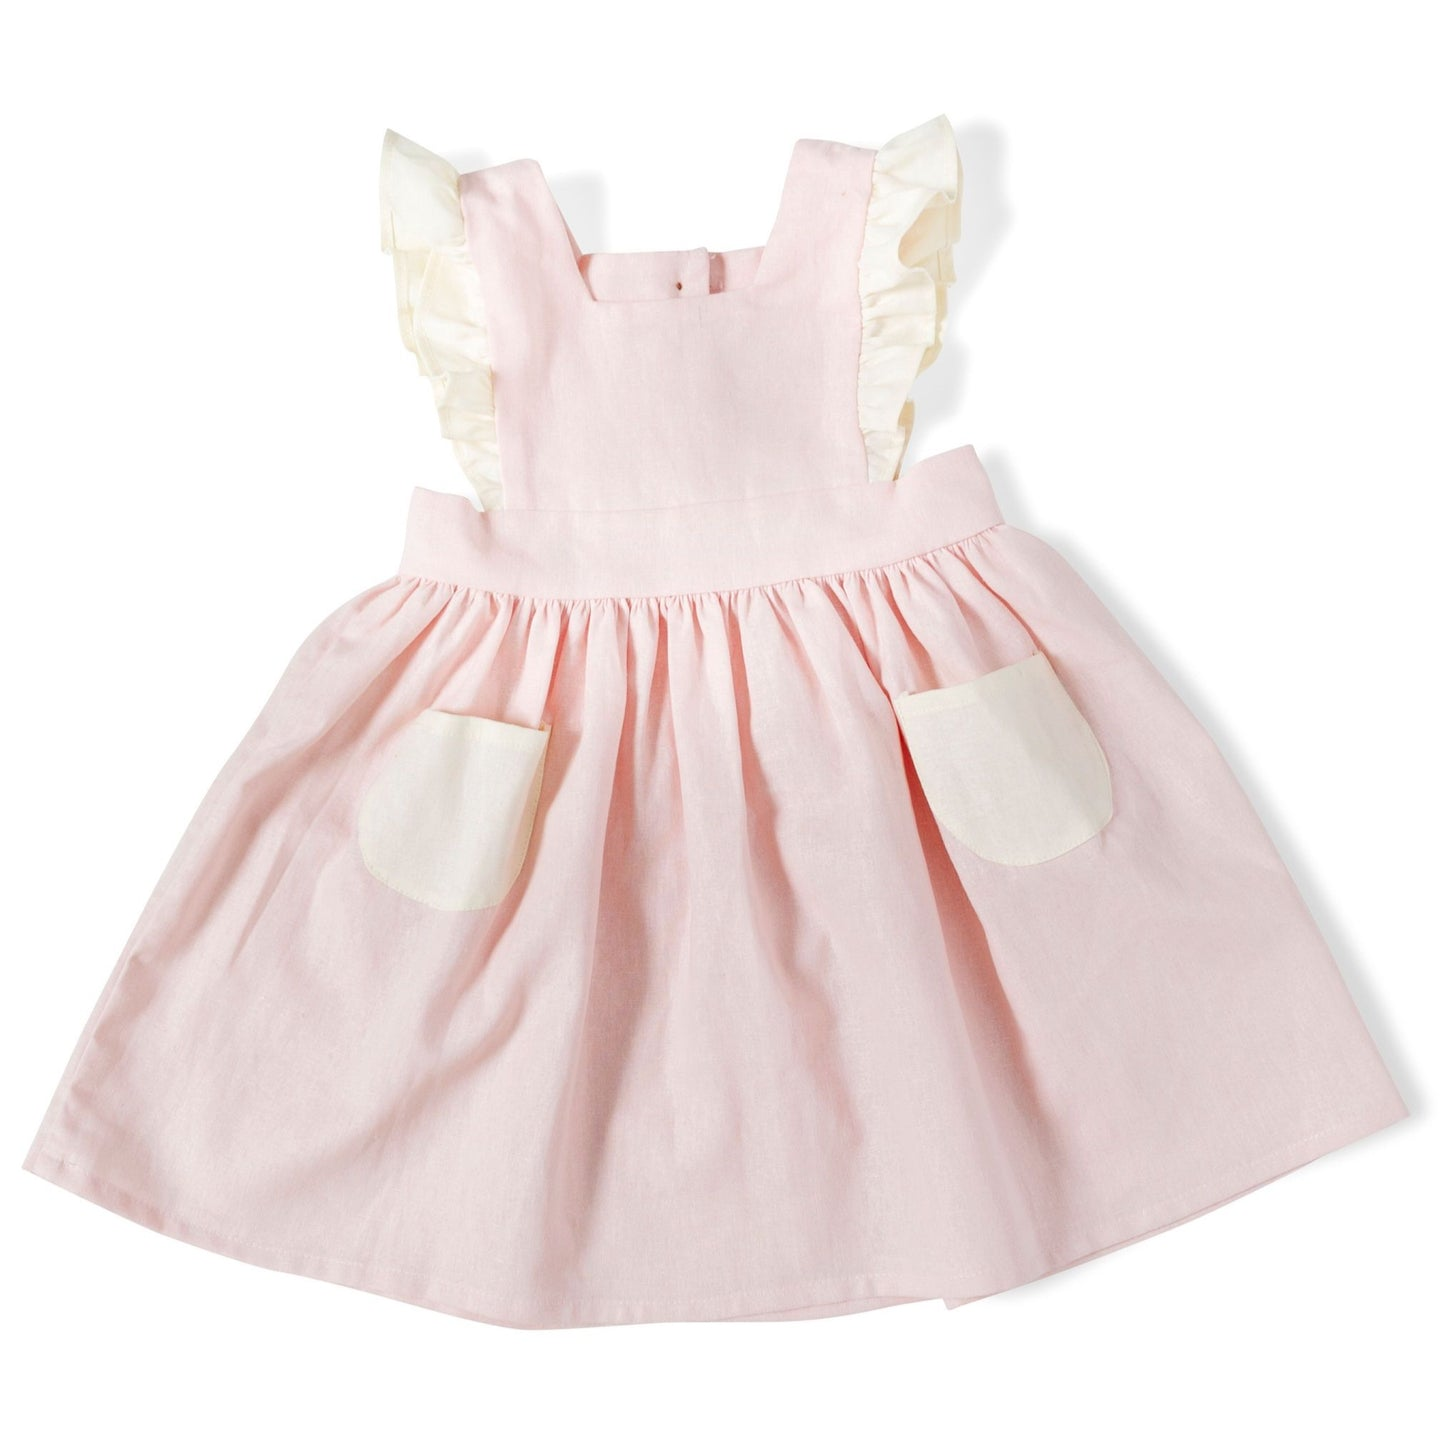 Linen Pinafore in Strawberry and Cream